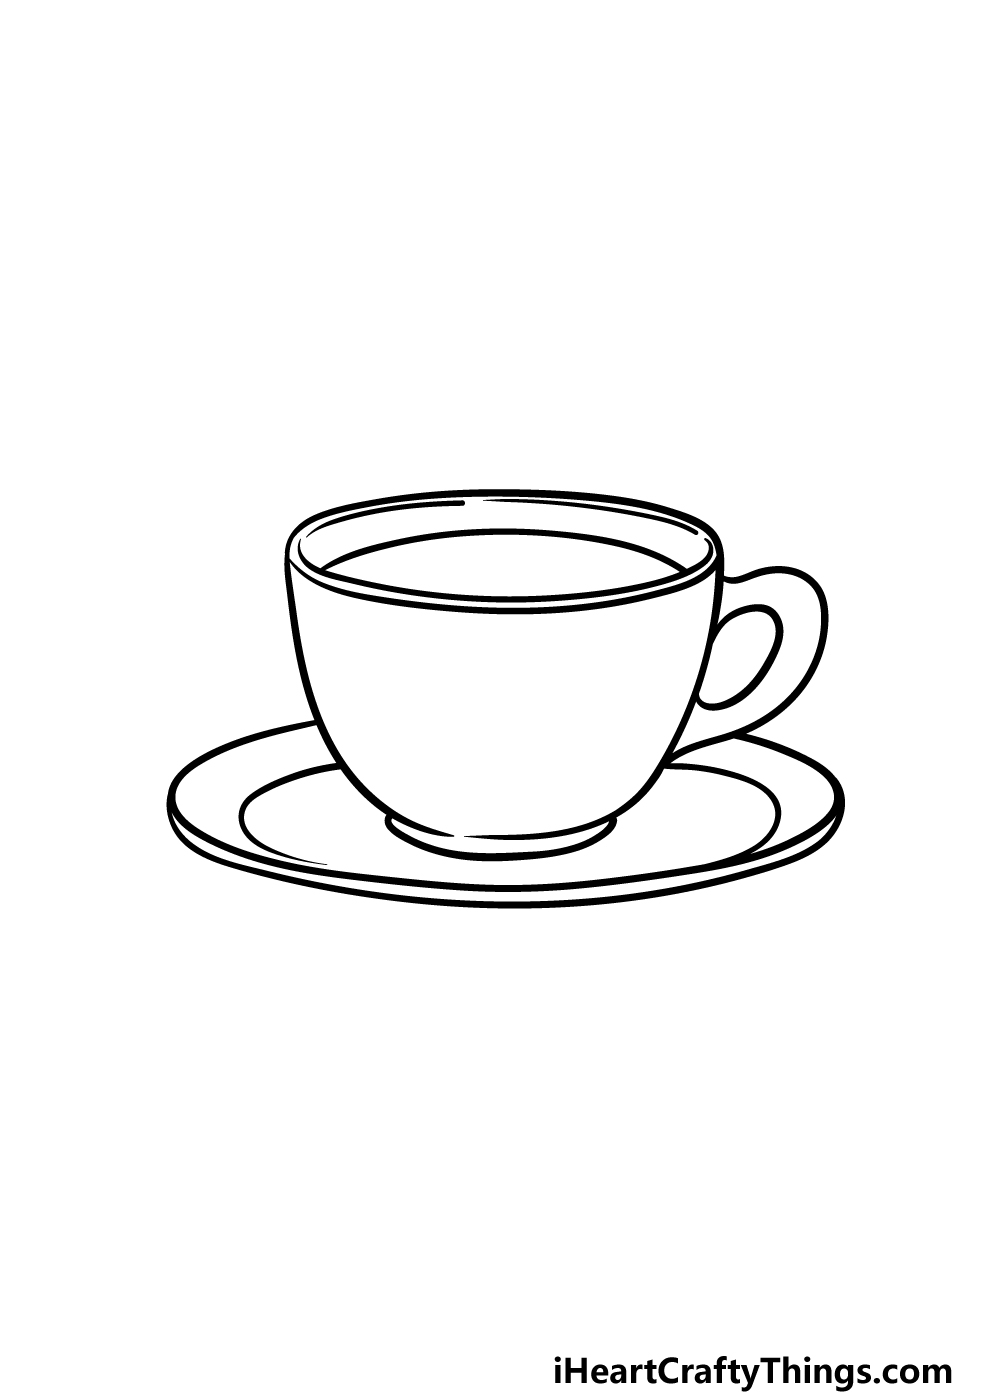 drawing a tea cup step 4